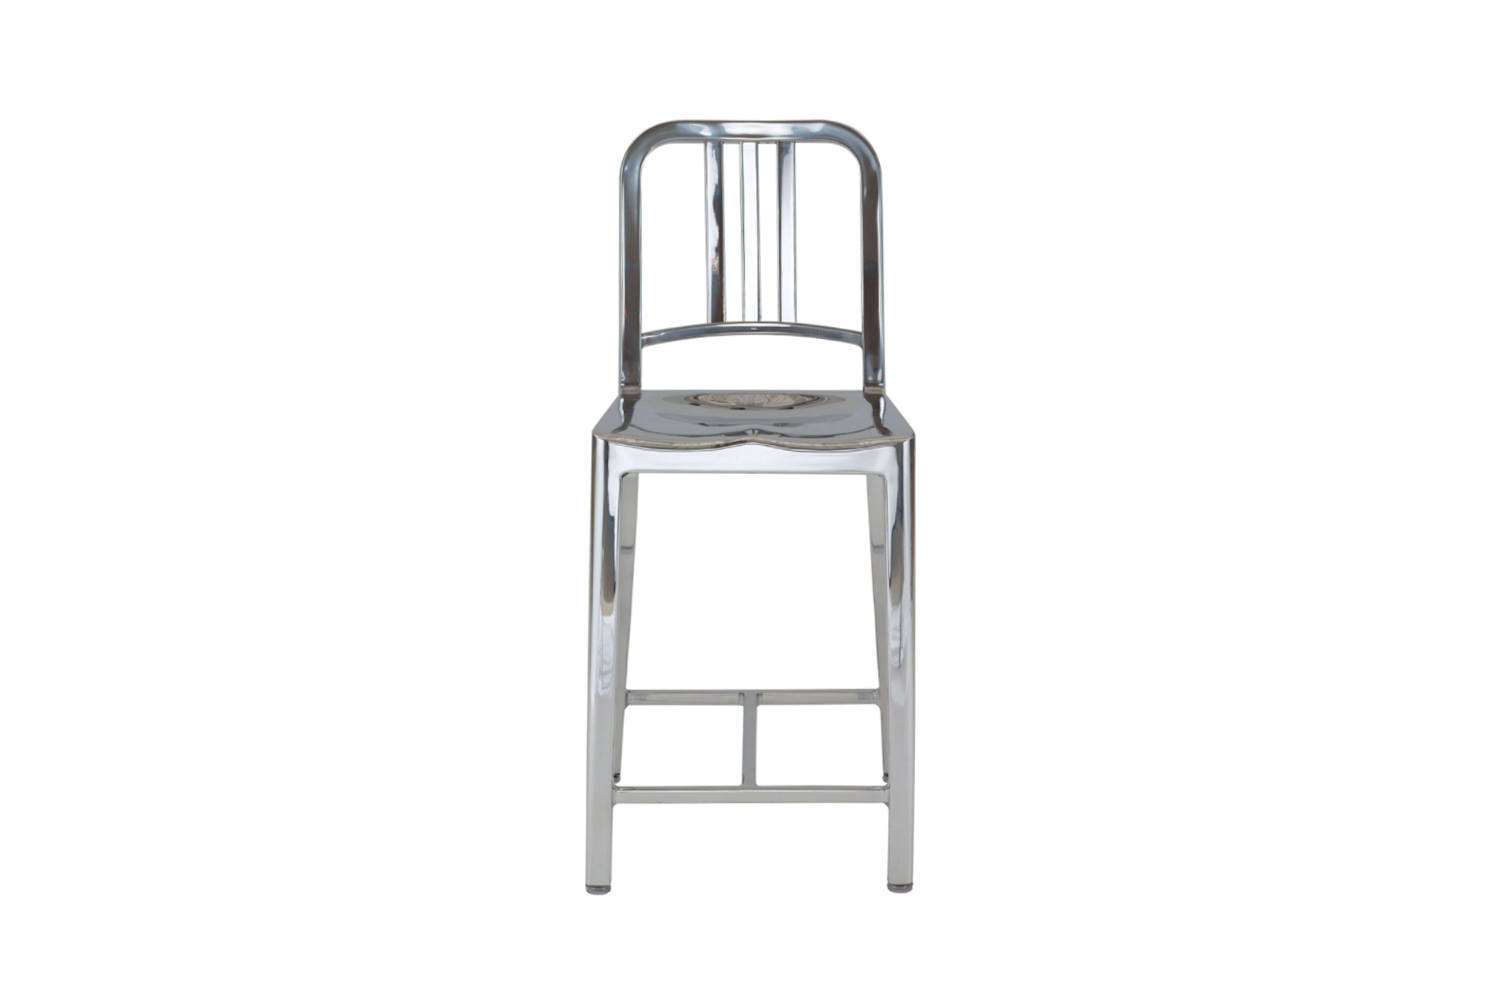 the emeco navy stool, shown in aluminum, comes in a wide range of colors; \$895 12